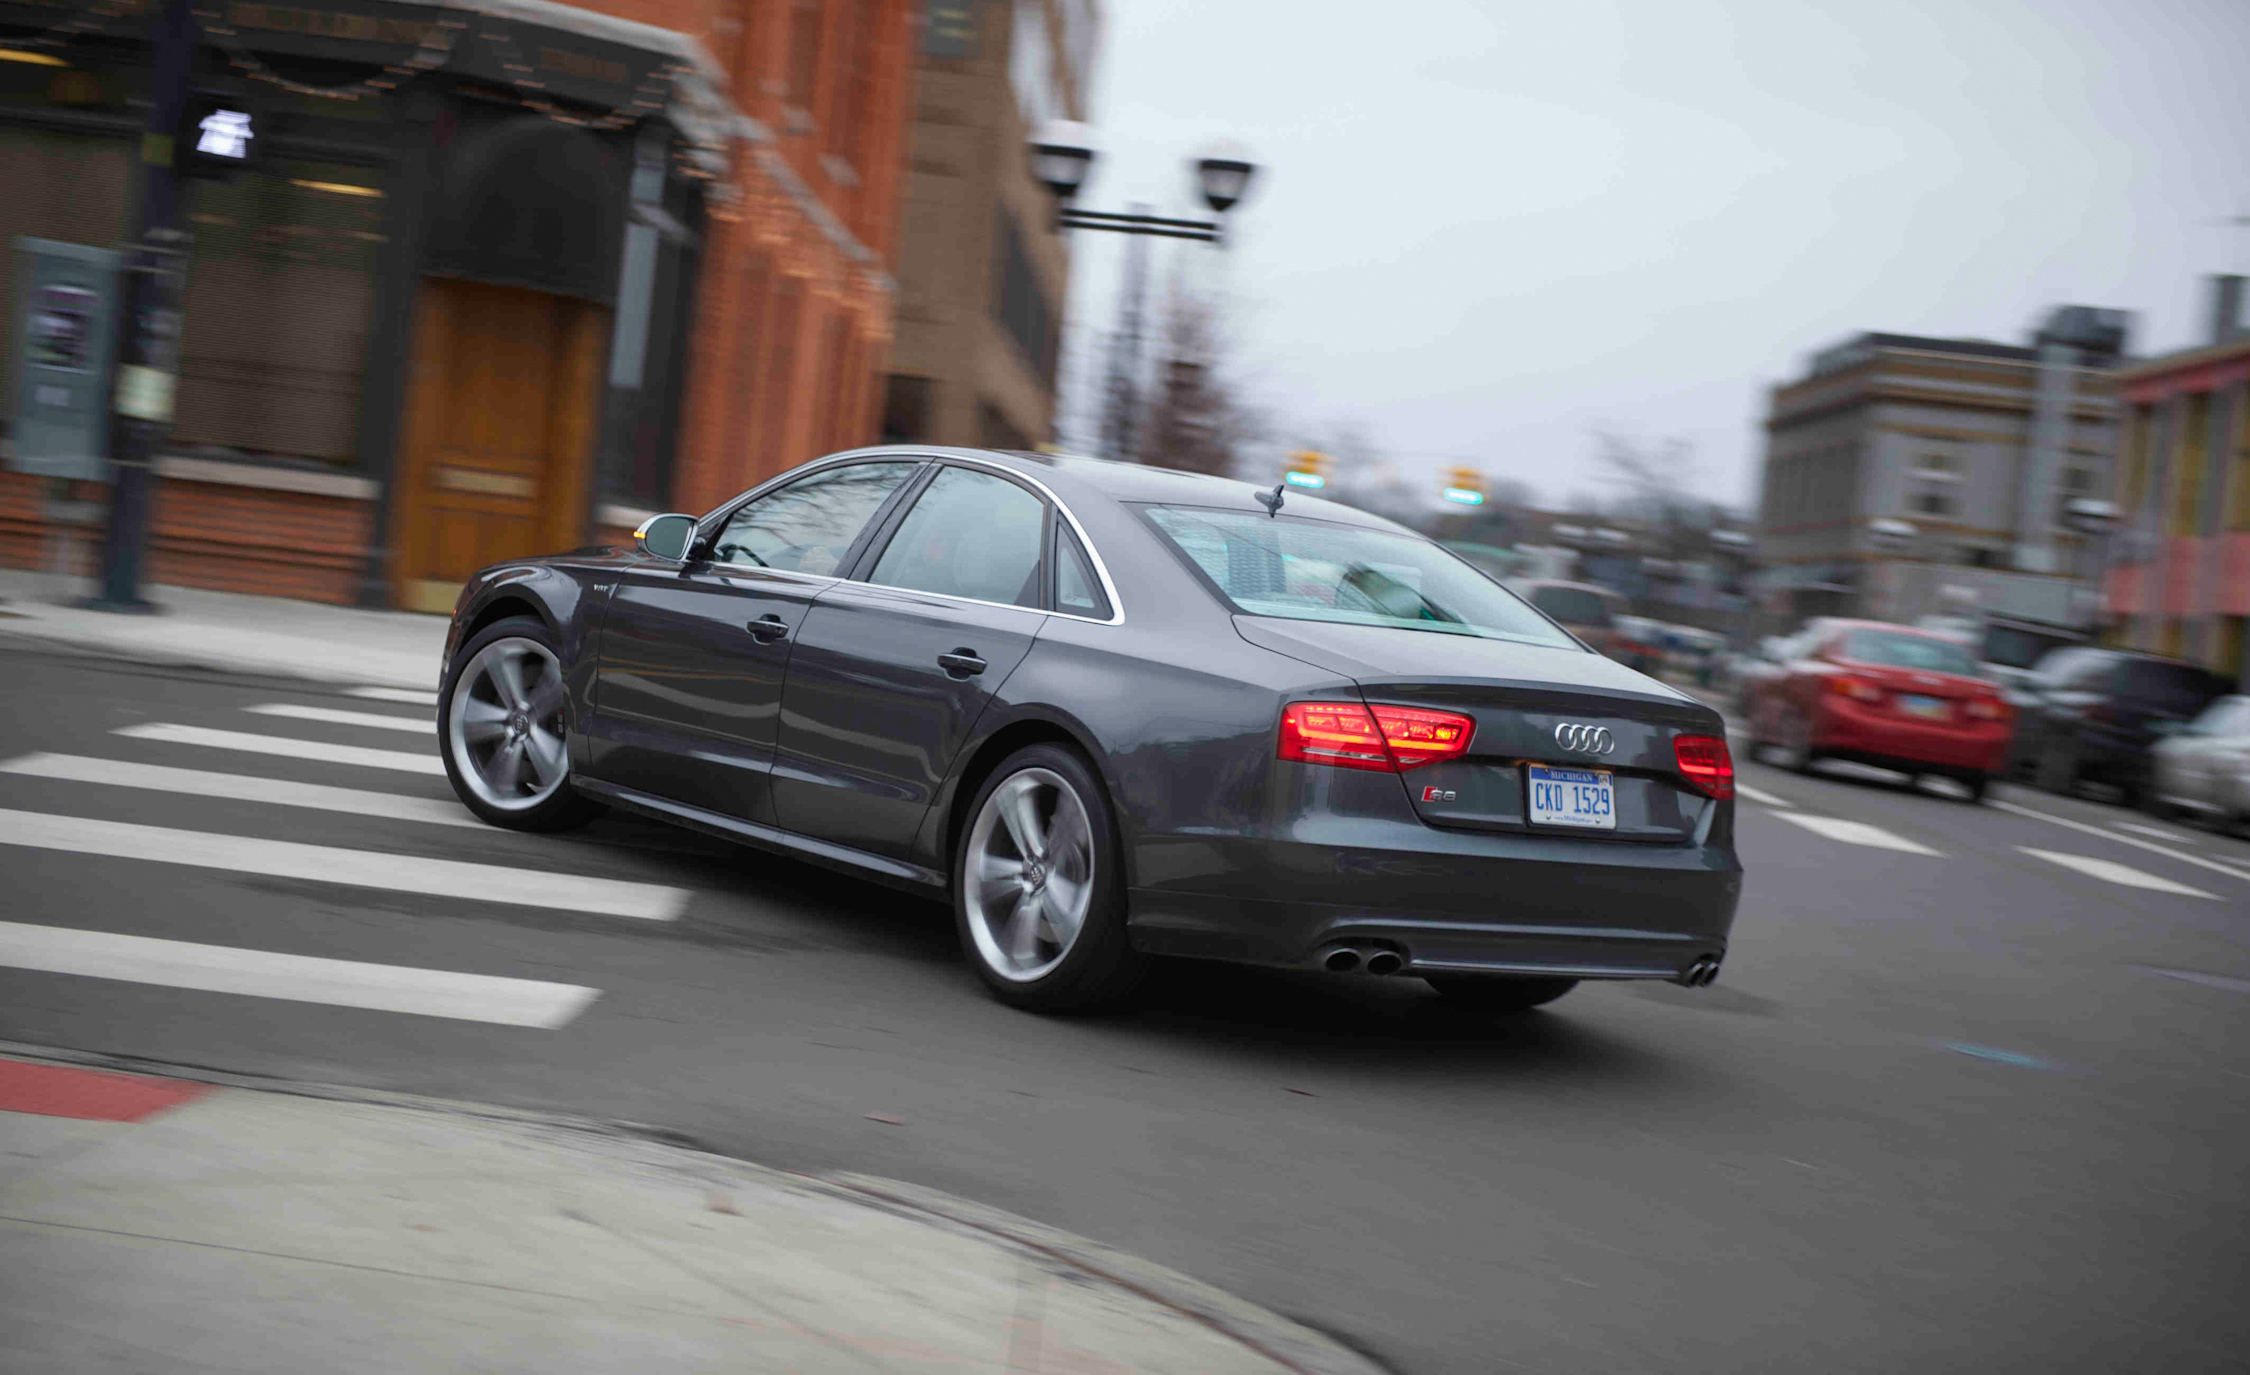 2013 Audi S8 Test Drive Rear And Side View (View 7 of 25)